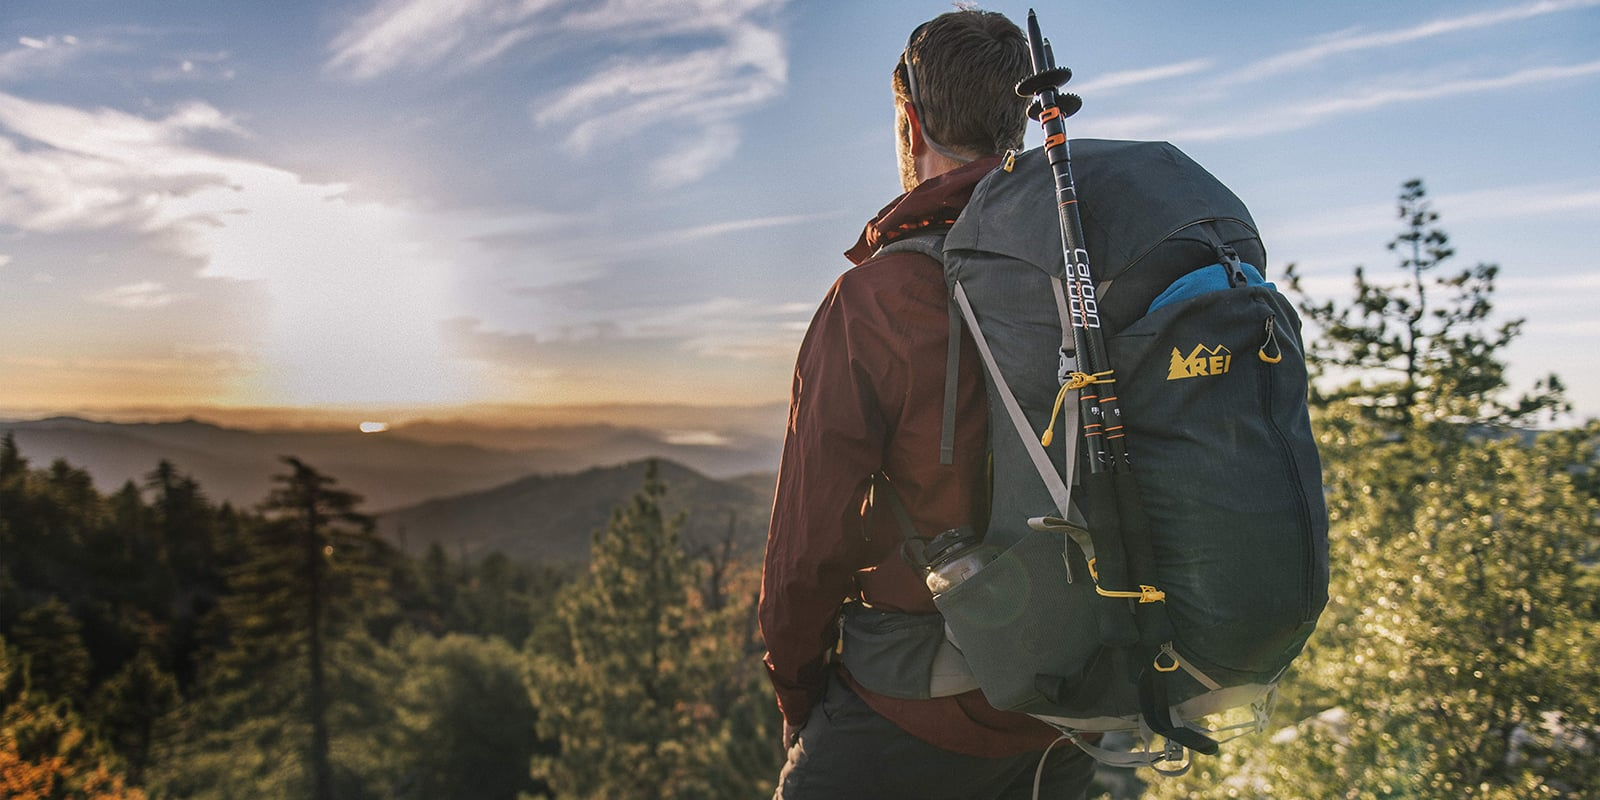 Things to do before you leave home for backpacking